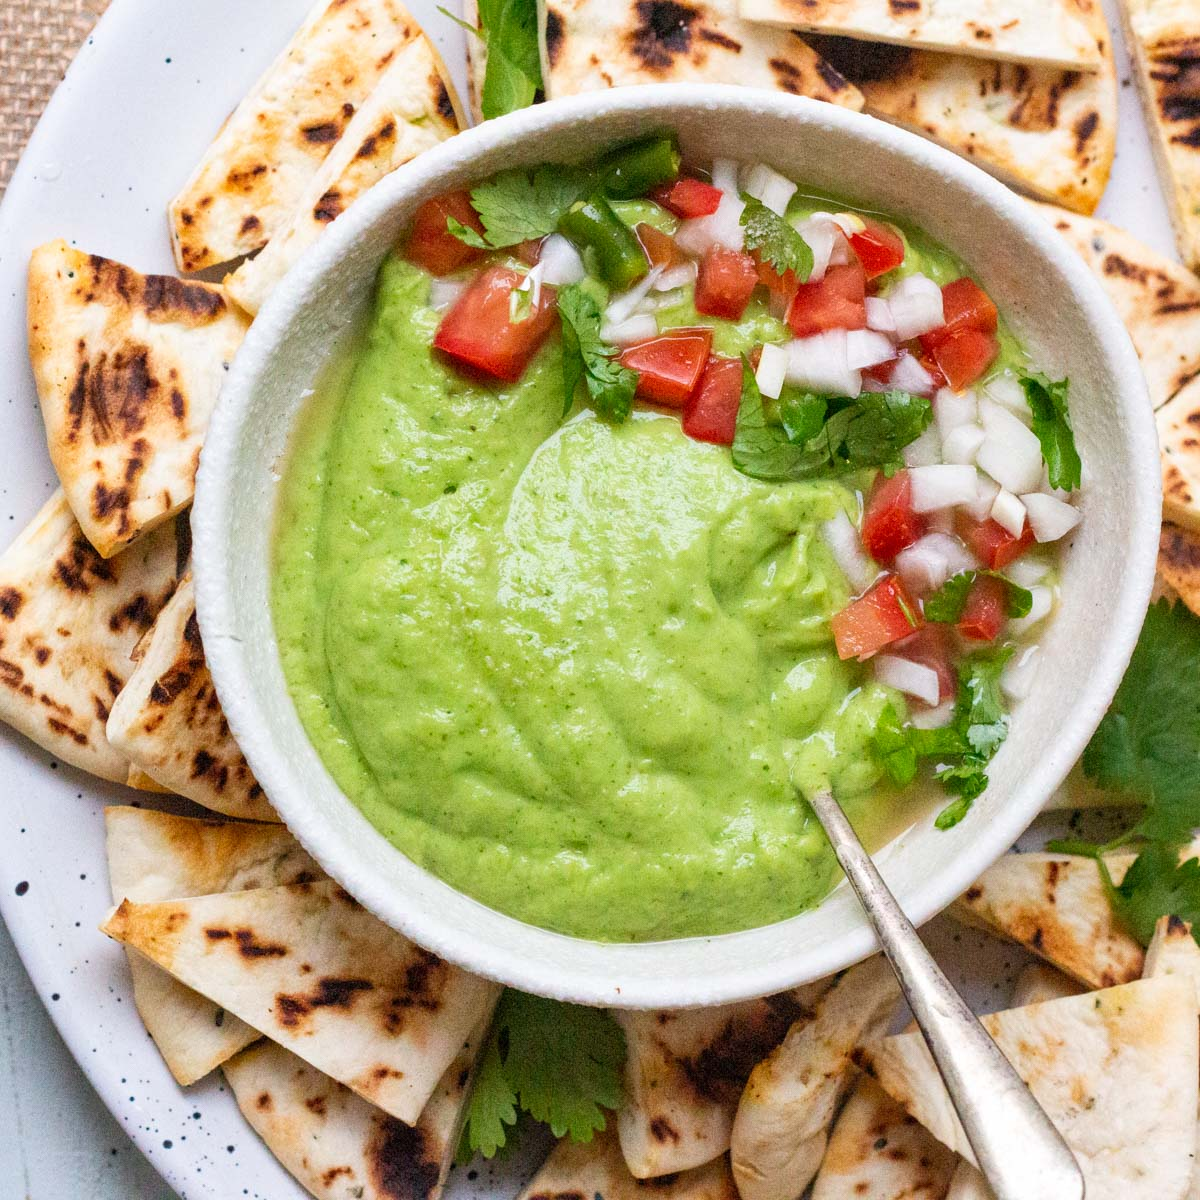 A plate of toasted pita chips. In the middle of the plate is a bowl of avocado green chutney with a spoon in it, and garnished with chopped coriander, tomatoes and onion.